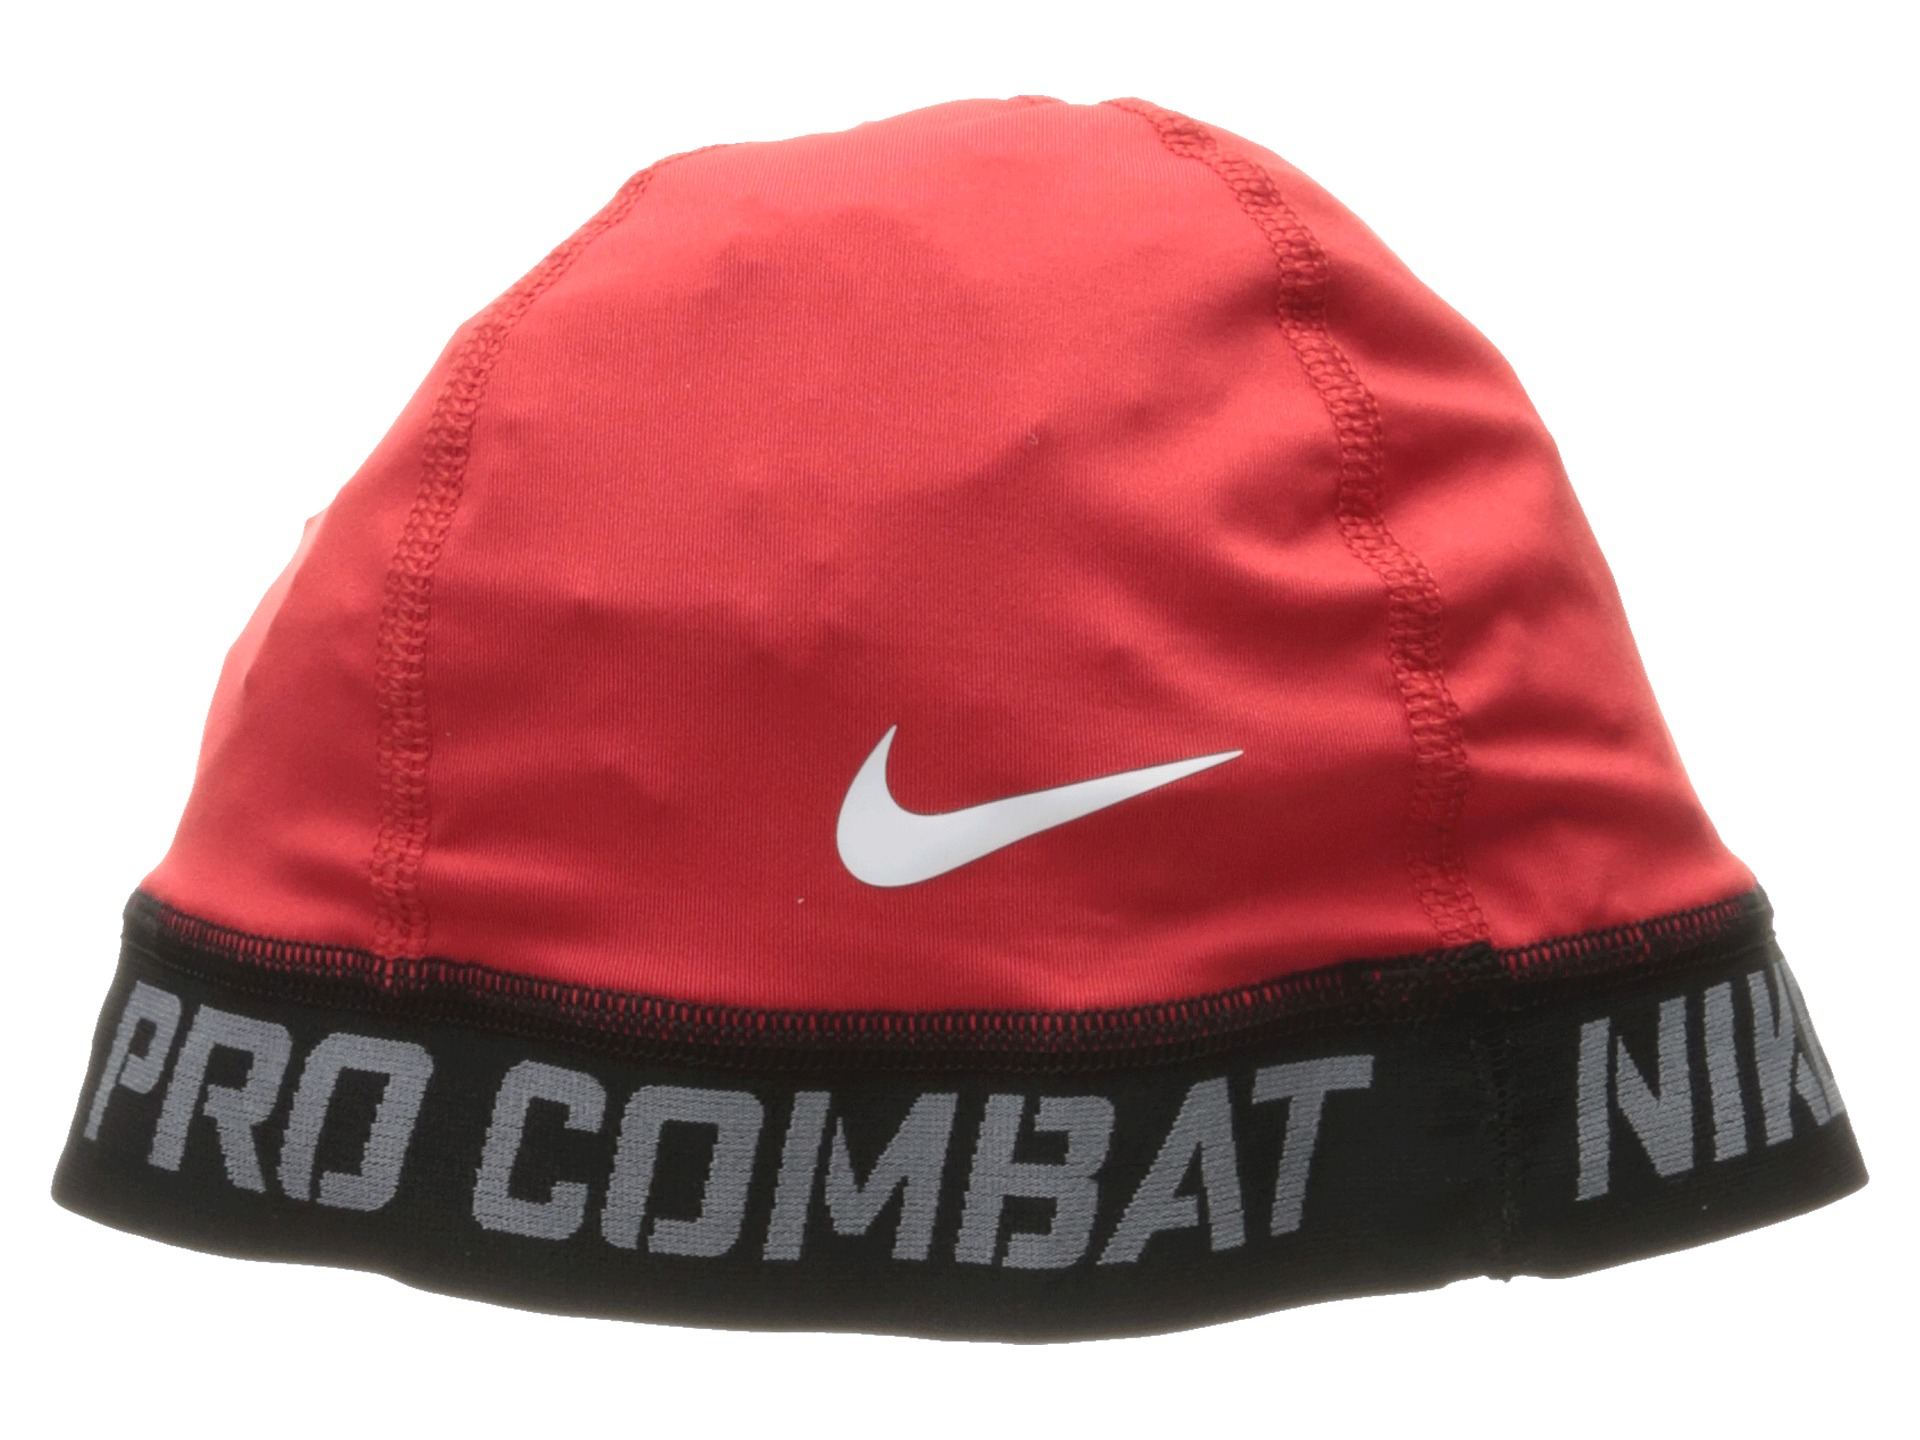 61cc97e011e34 Nike Pro Combat Banded Skull Cap 2.0 in Red - Lyst